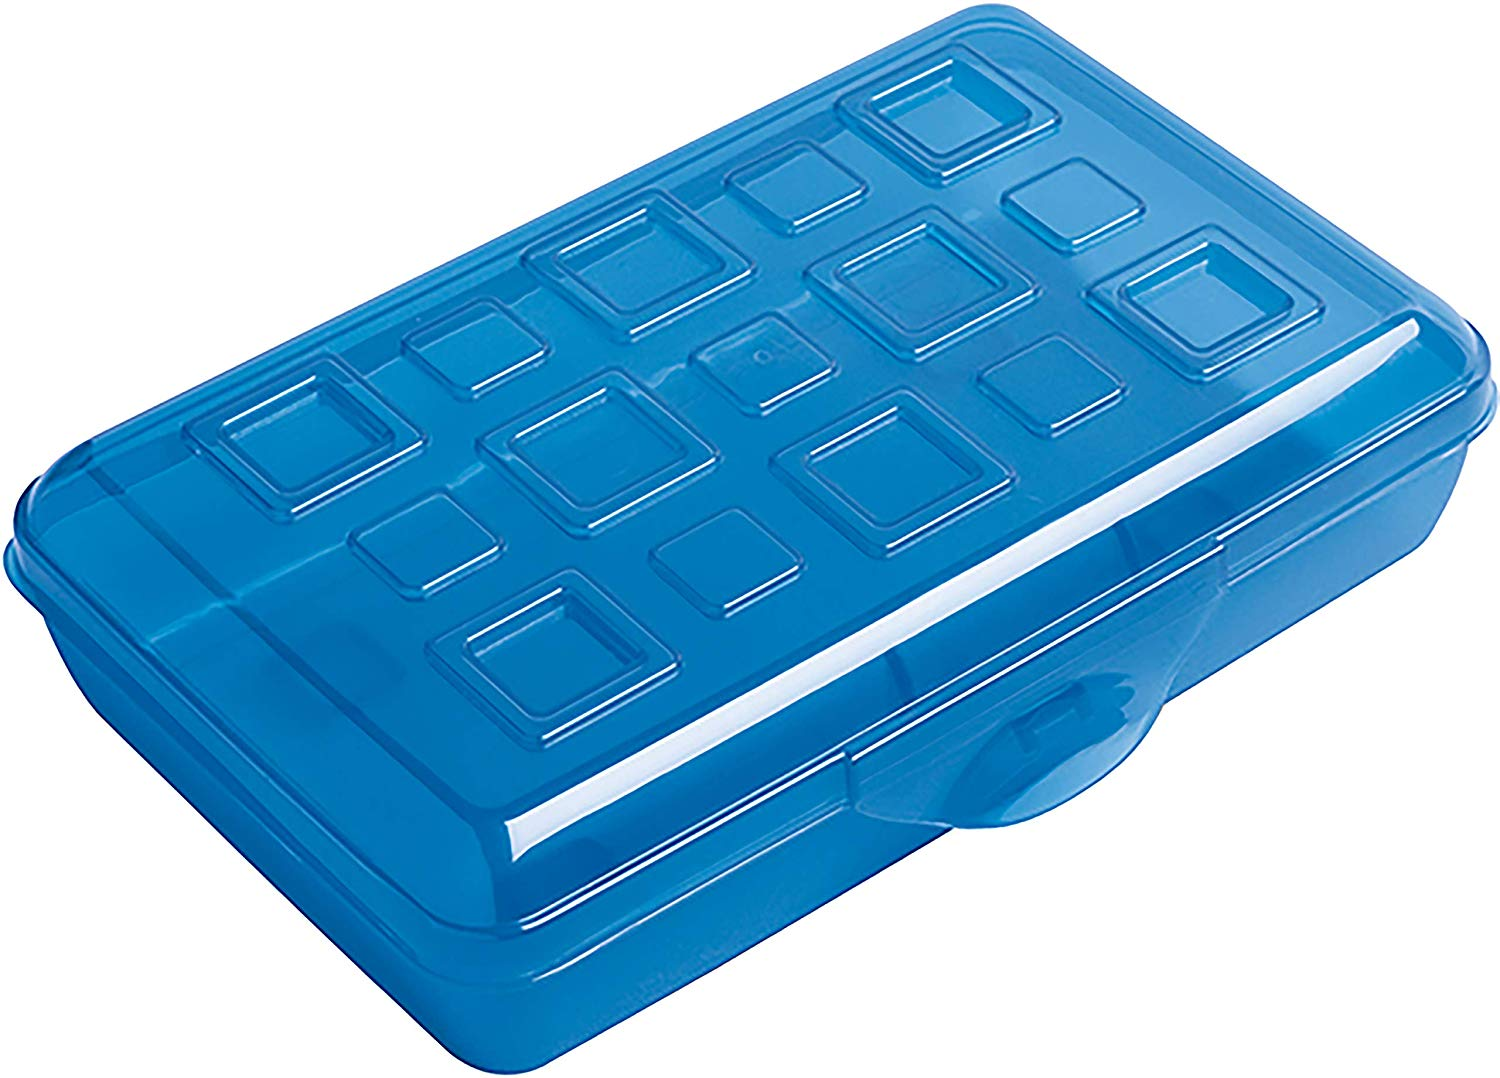 Sterilite Plastic Pencil Box (17234812).